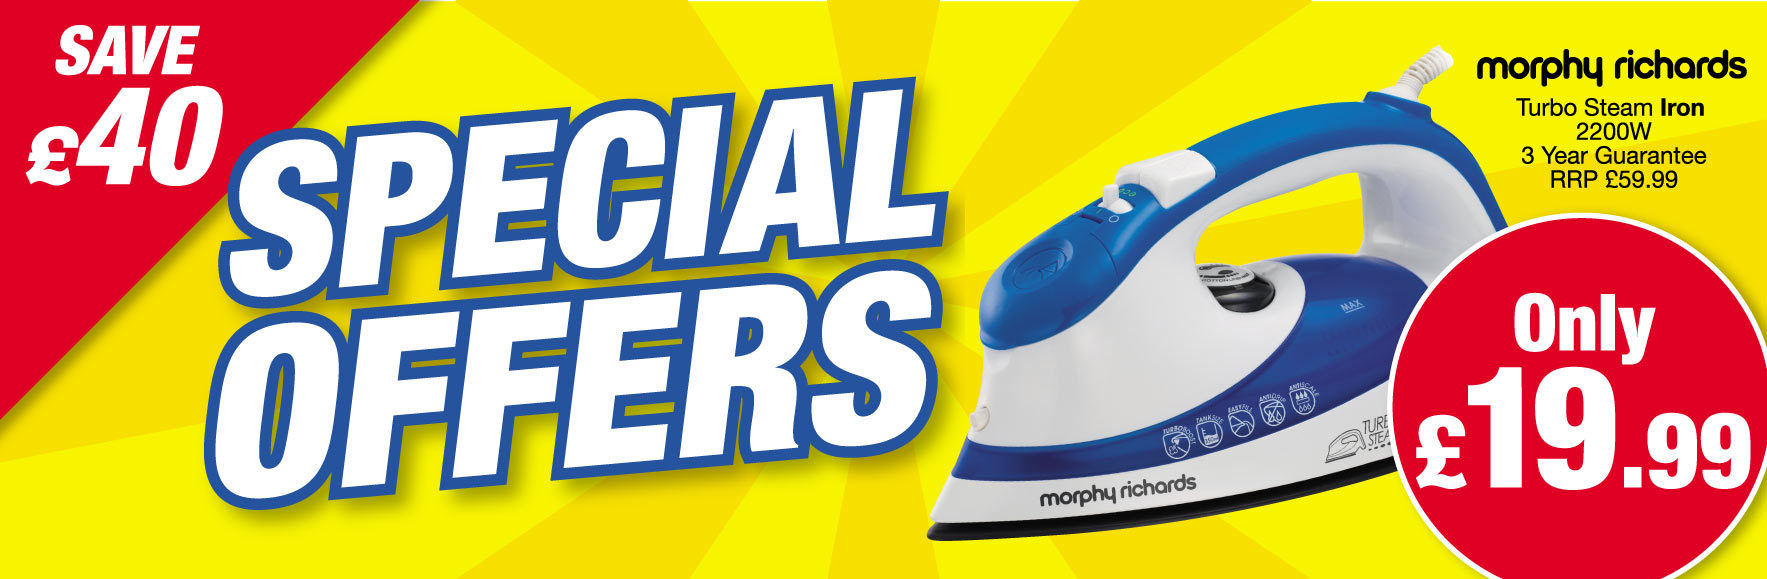 Morphy Richards turbo steam iron 2200W. SAVE £40 OFF RRP! ONLY £19.99